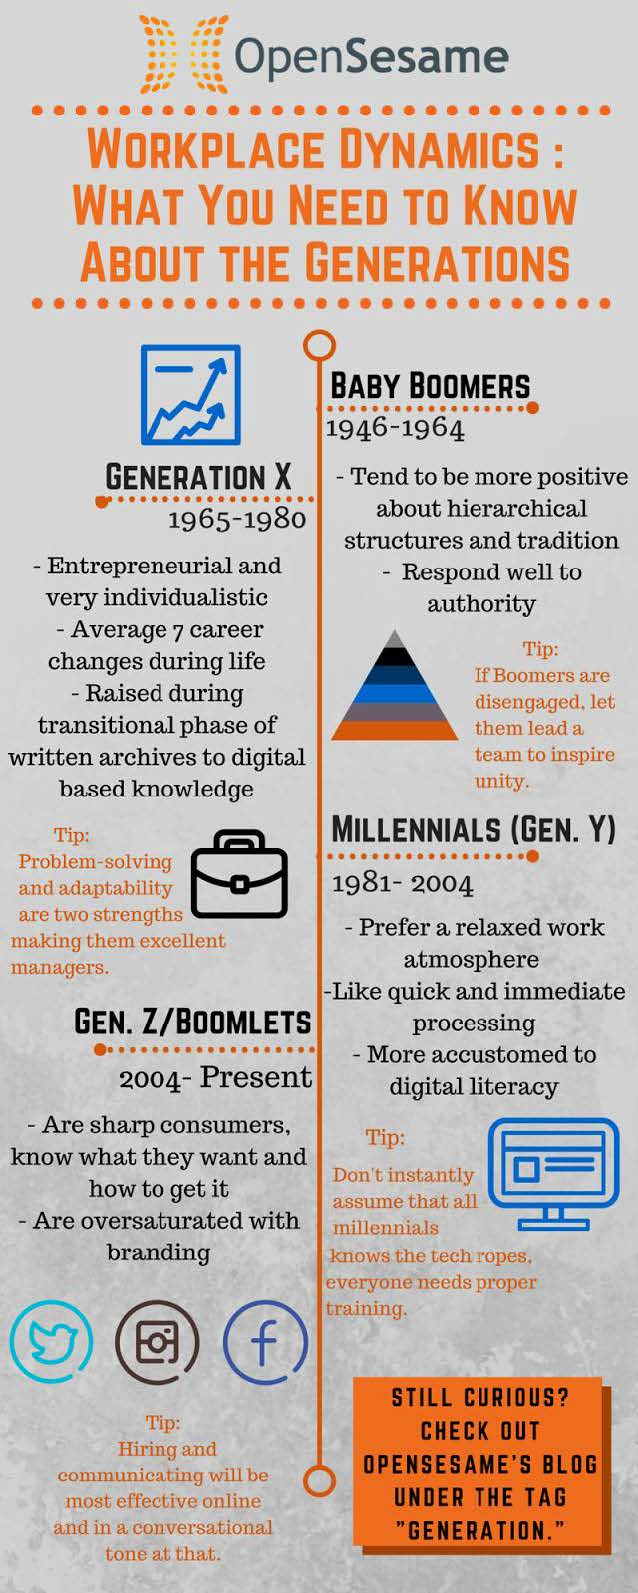 infographic what every manager should know about the generations illustrates what managers and leaders alike should keep in mind when thinking about the generational divides that exist in the workplace generation